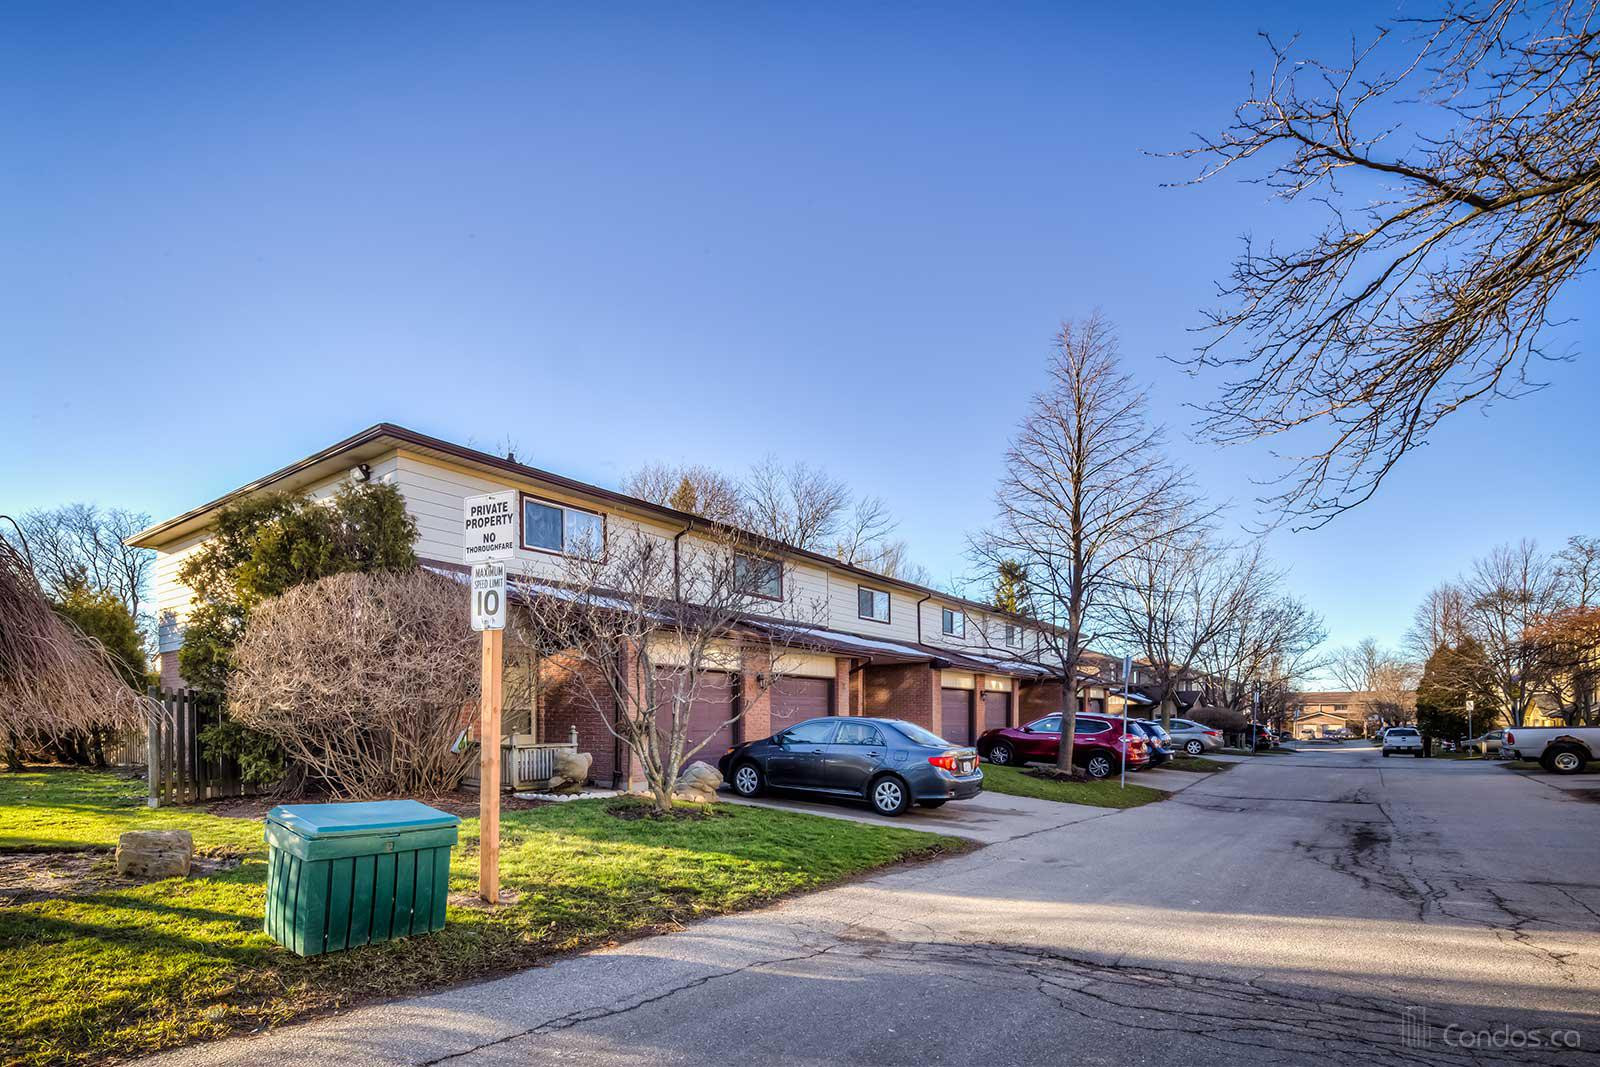 1455 Garth Condos at 1455 Garth St, Hamilton City 0